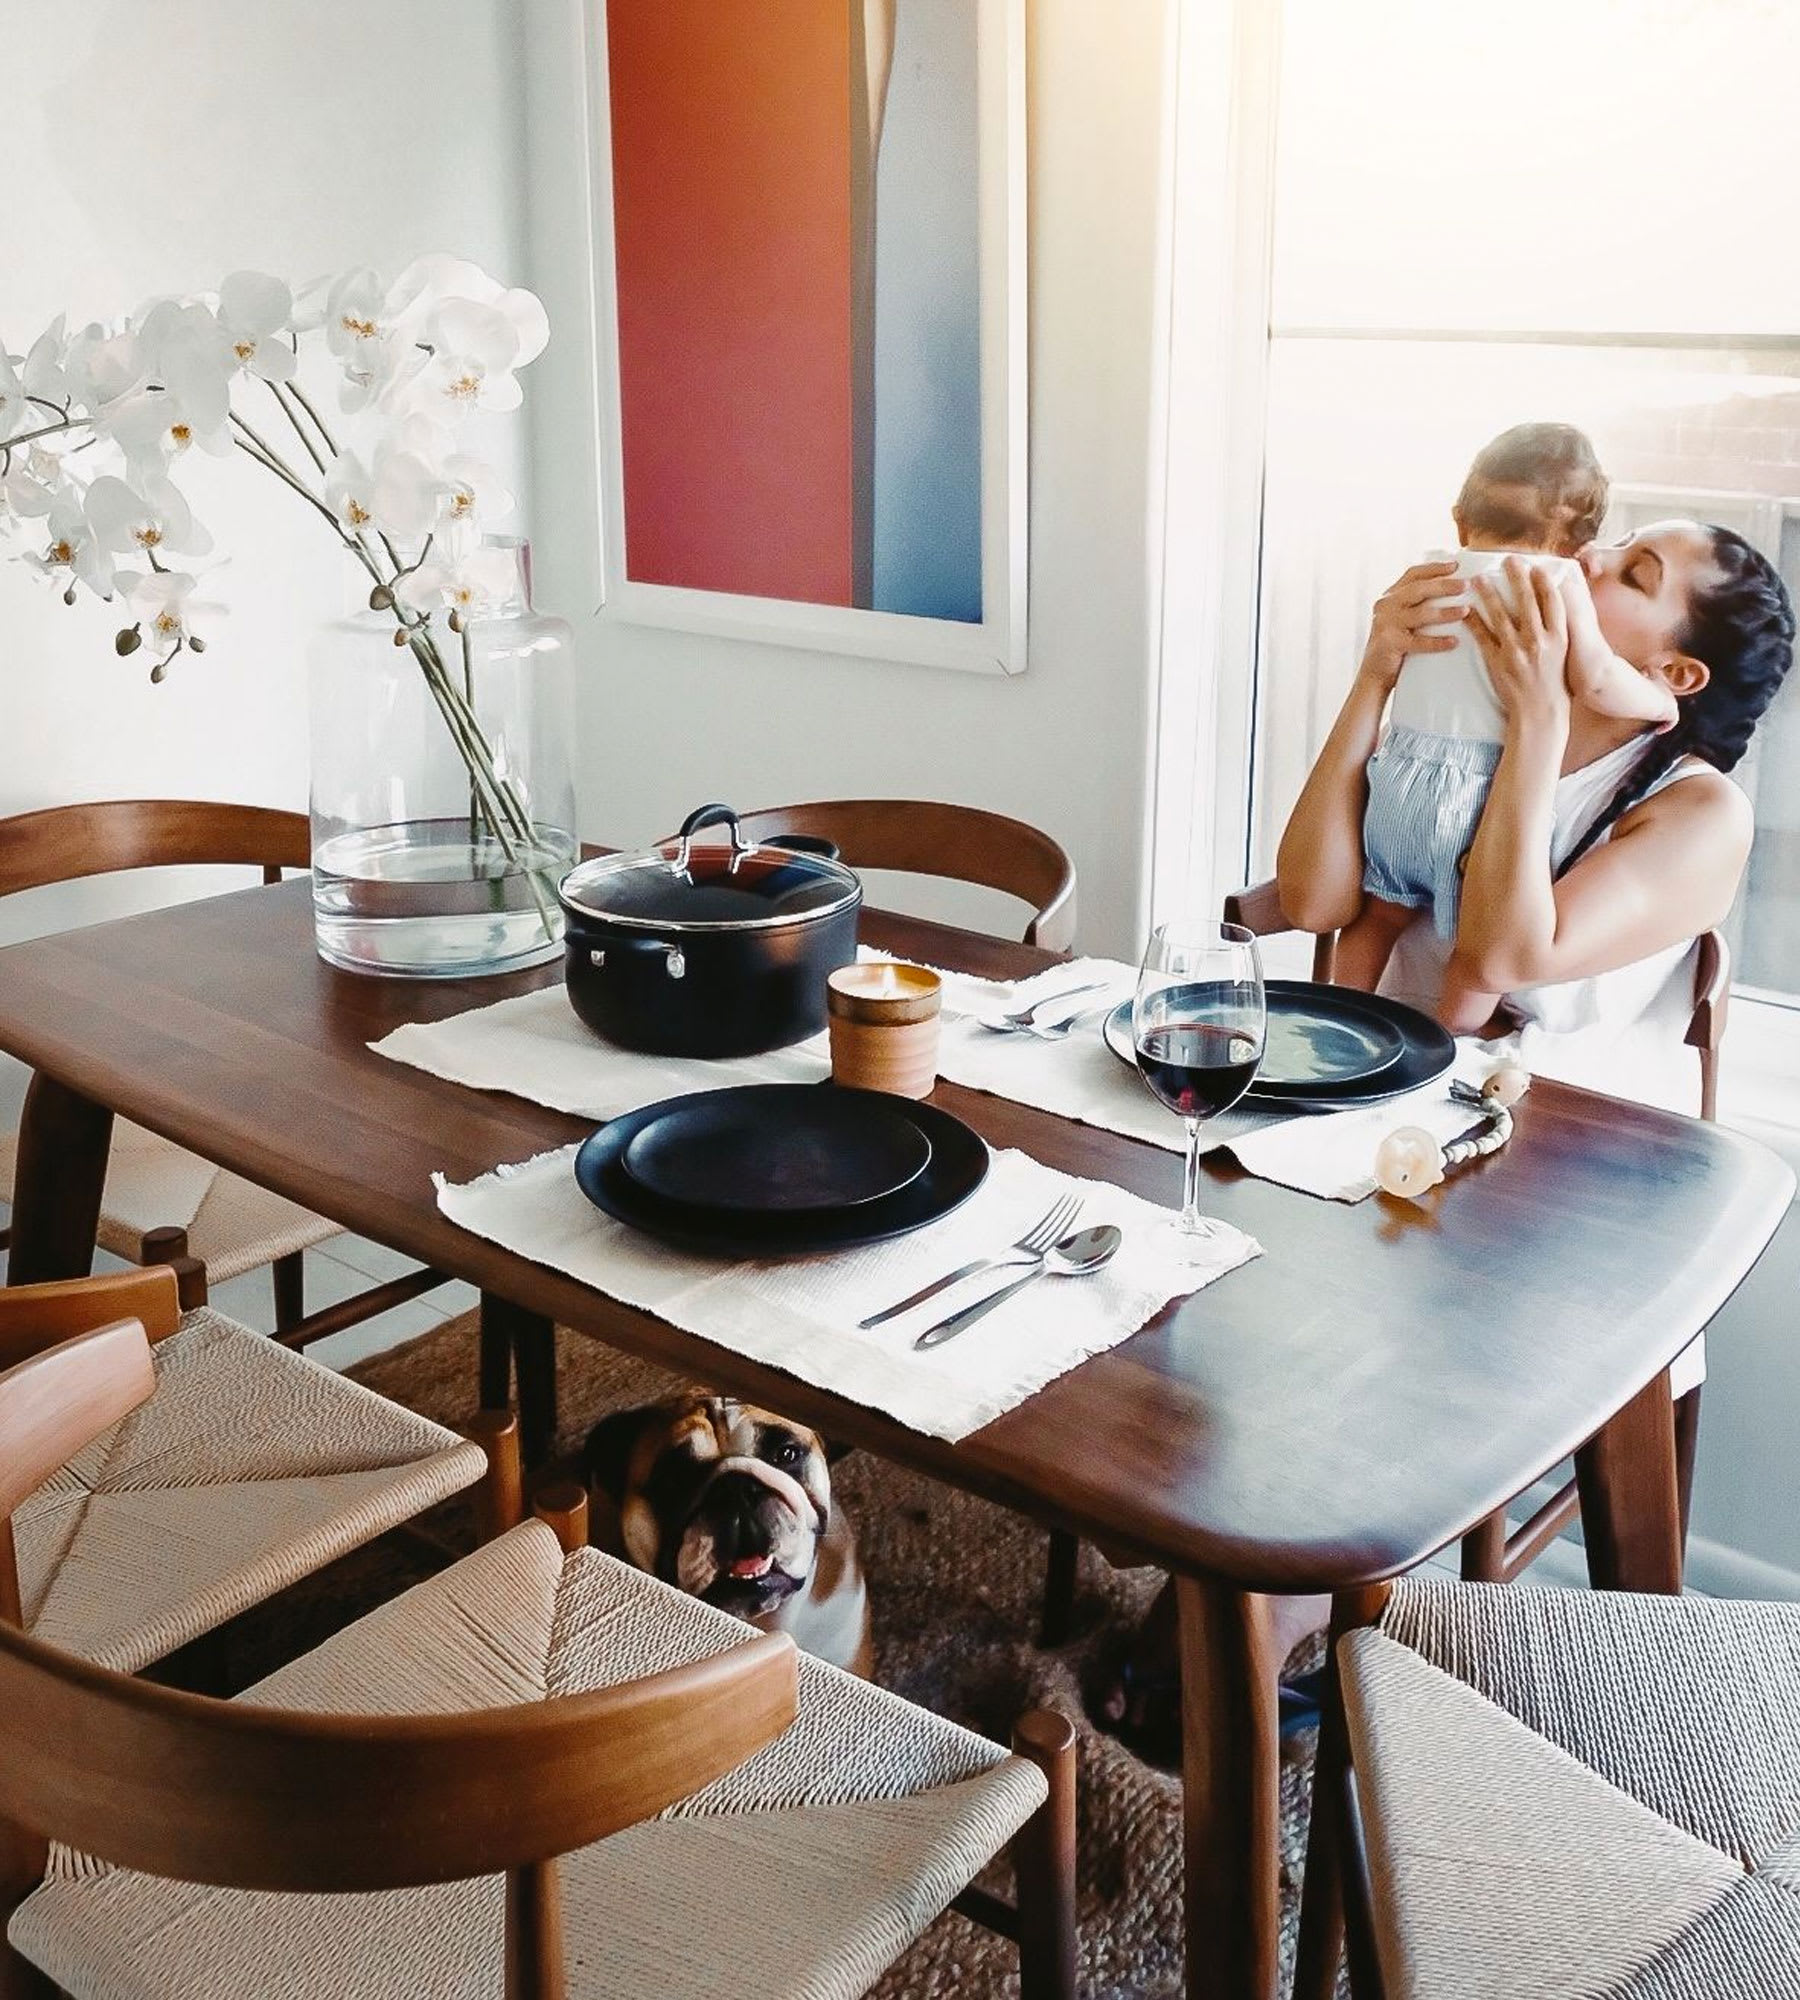 modern dining table, chairs and tableware in living room